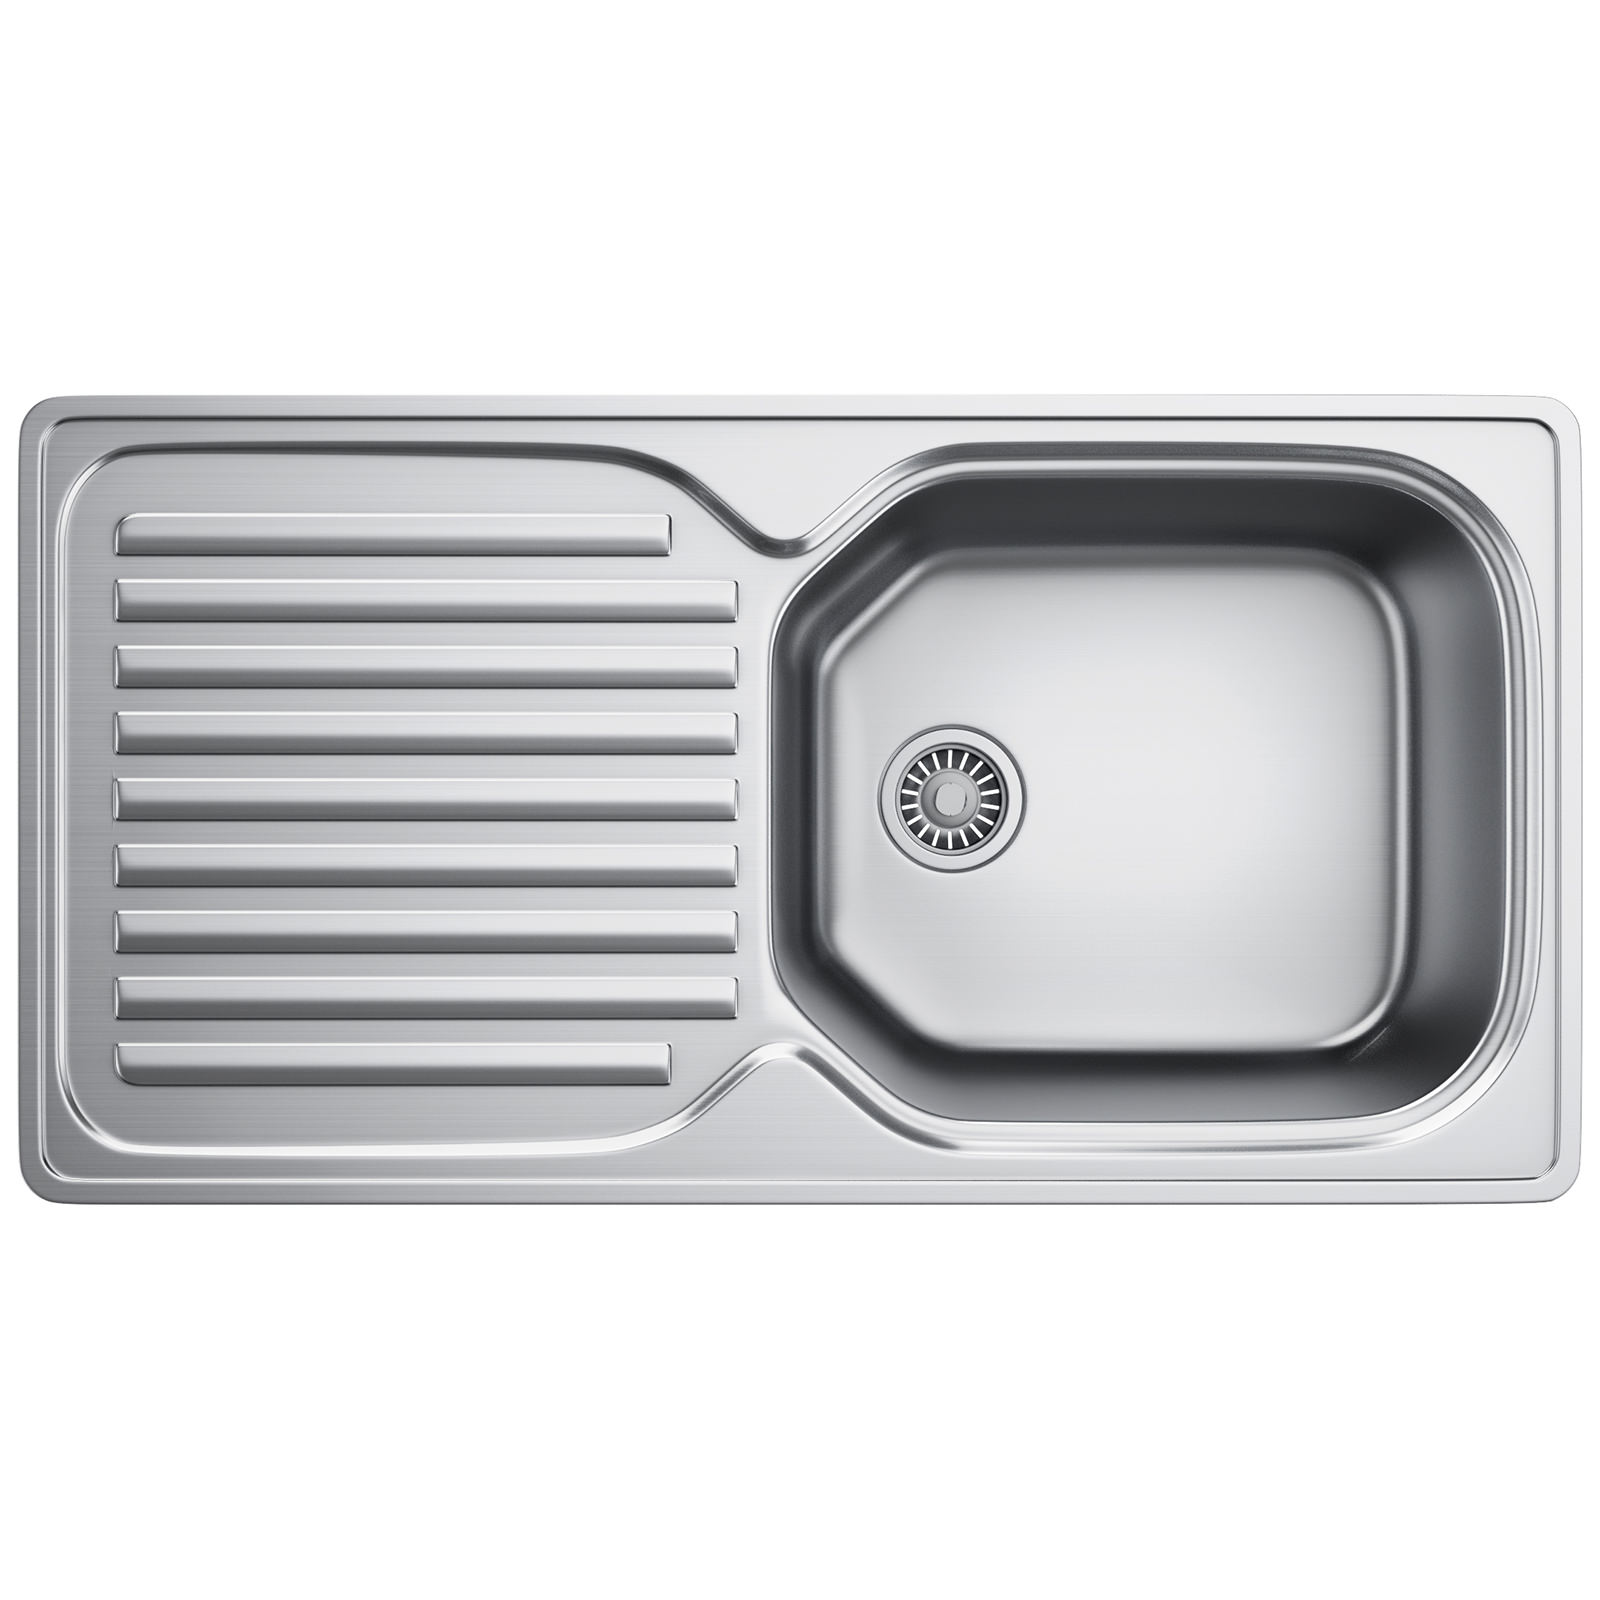 Franke Elba ELN 611 96 Stainless Steel 1.0 Bowl Kitchen Inset Sink ...